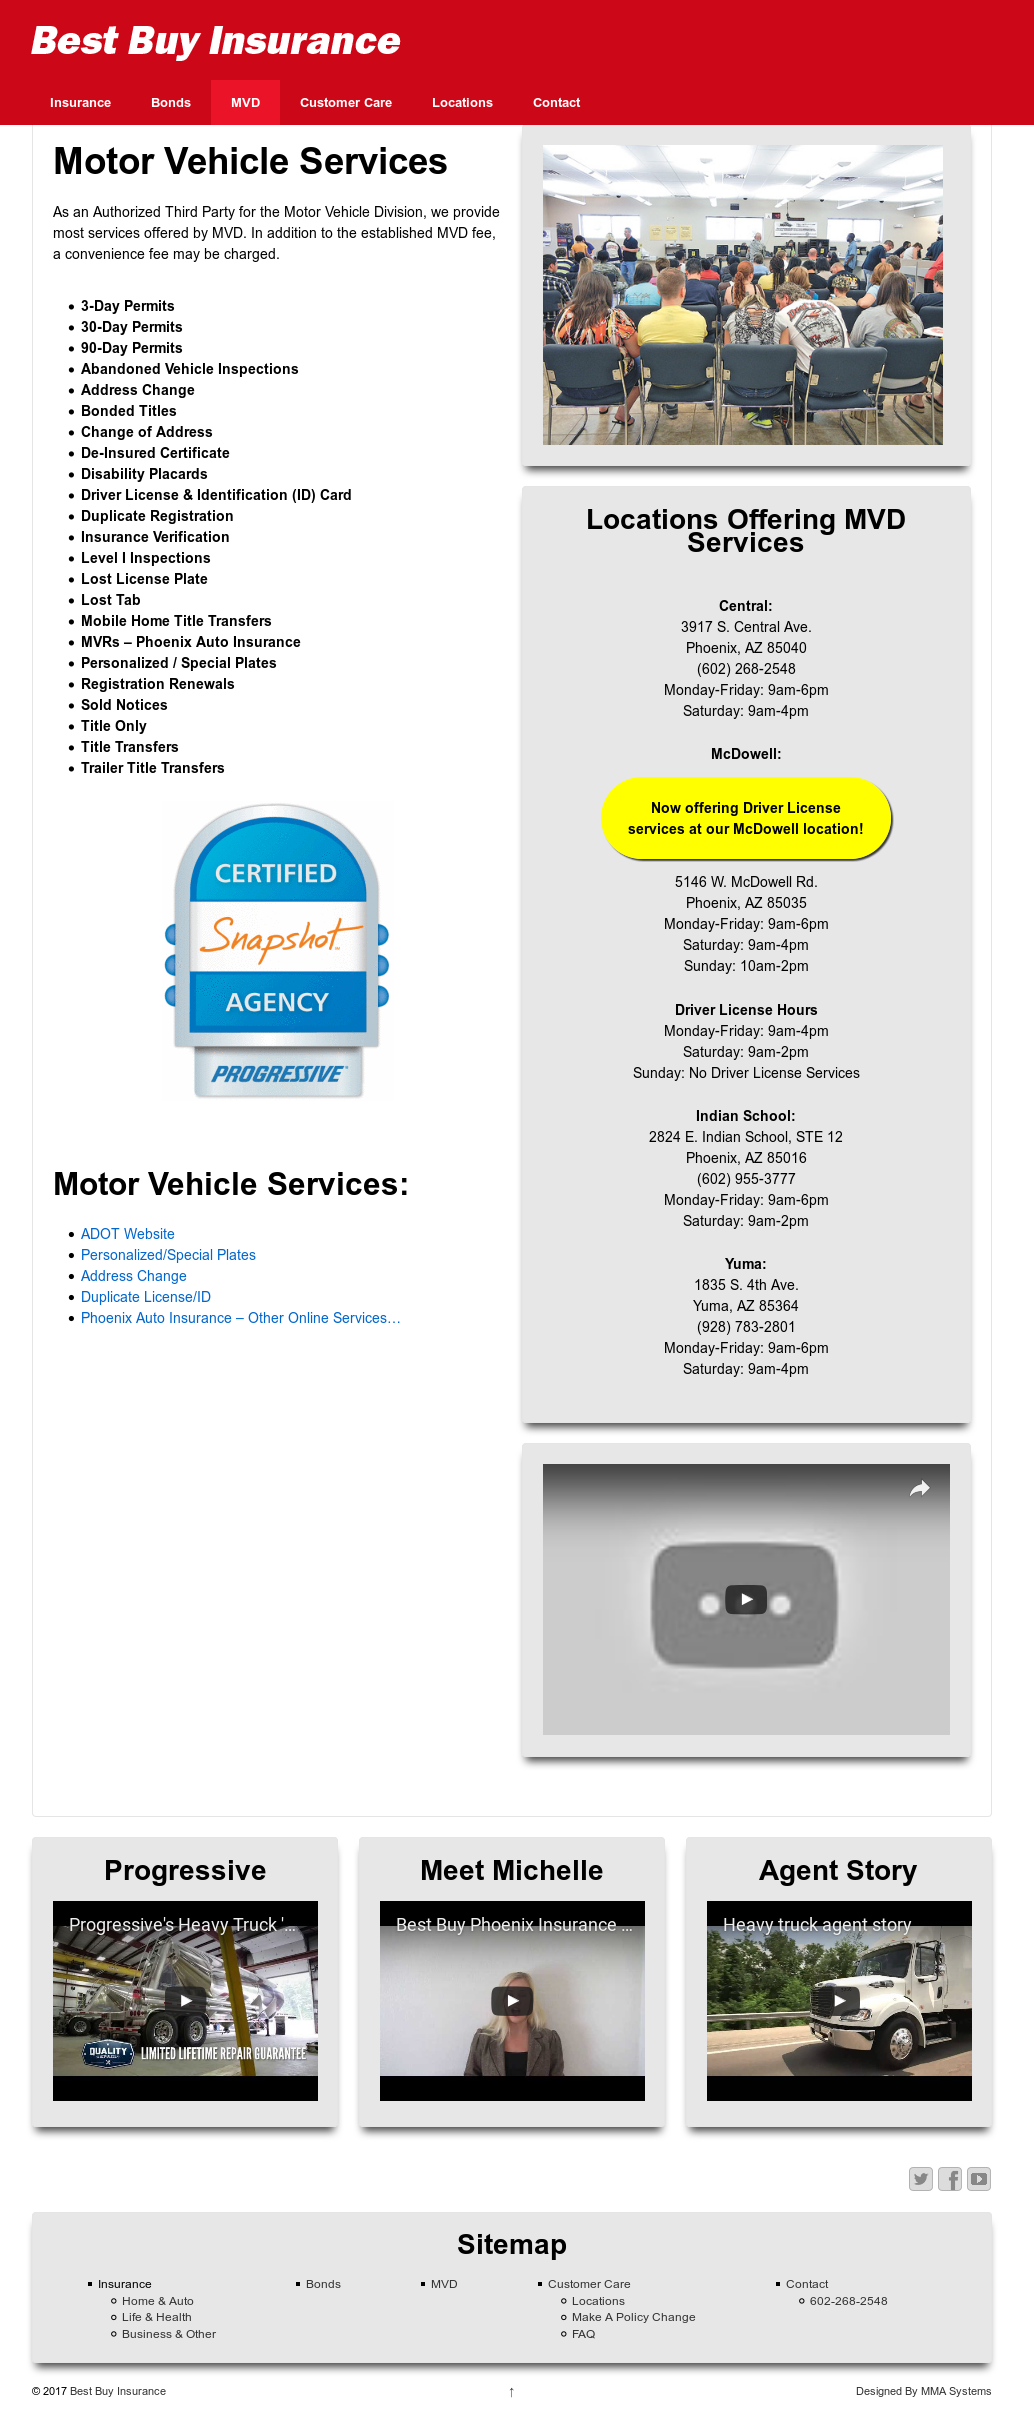 Dmvservices Competitors, Revenue and Employees - Owler